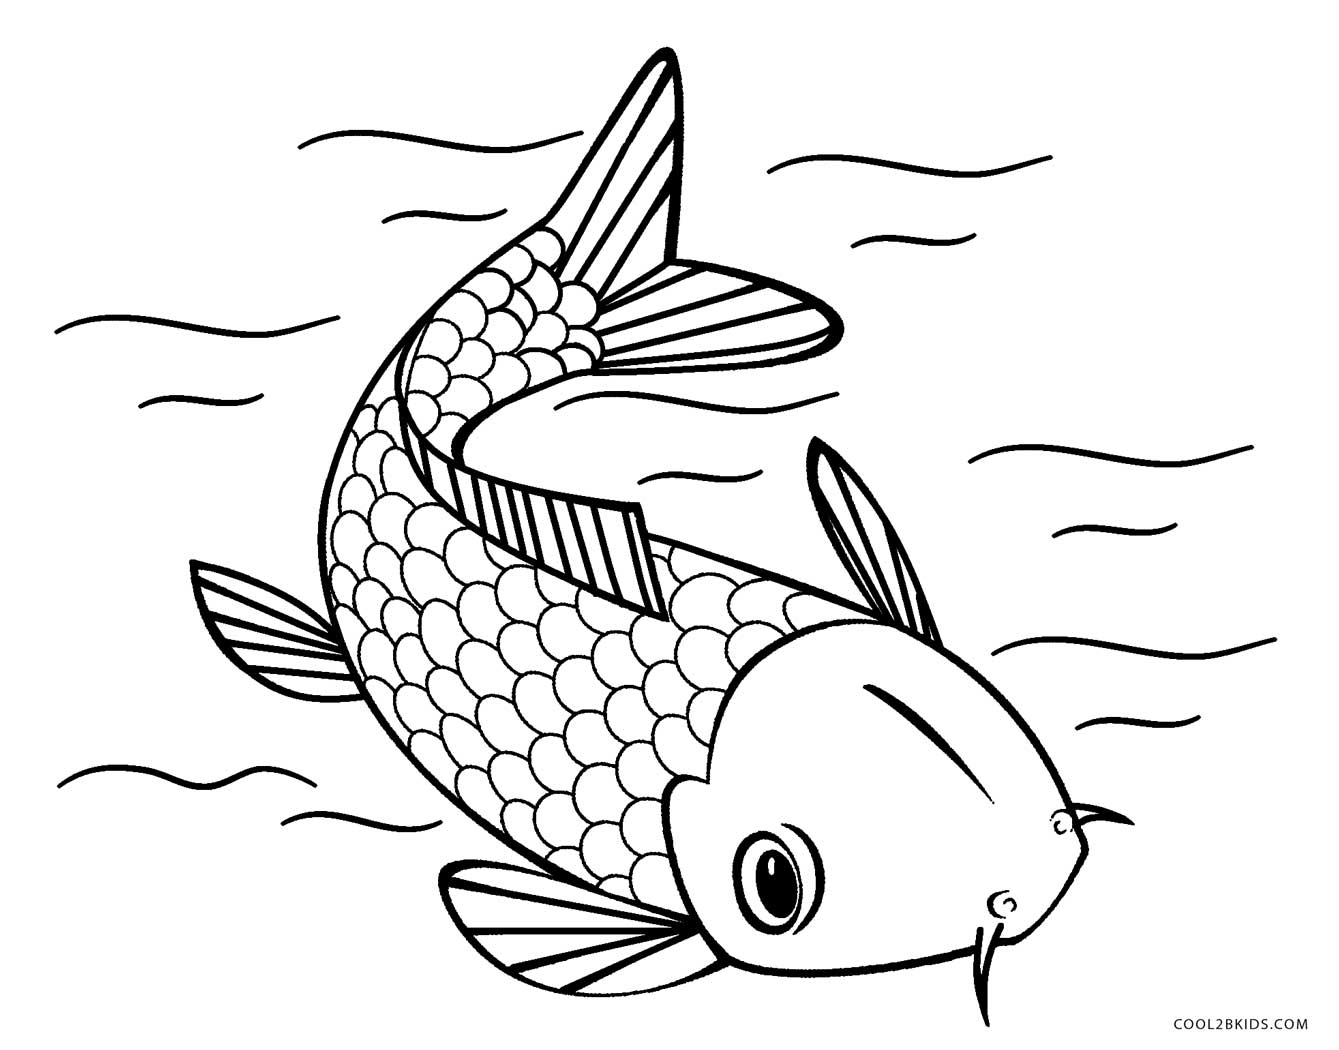 Free printable fish coloring pages for kids cool2bkids for Free coloring fish pages